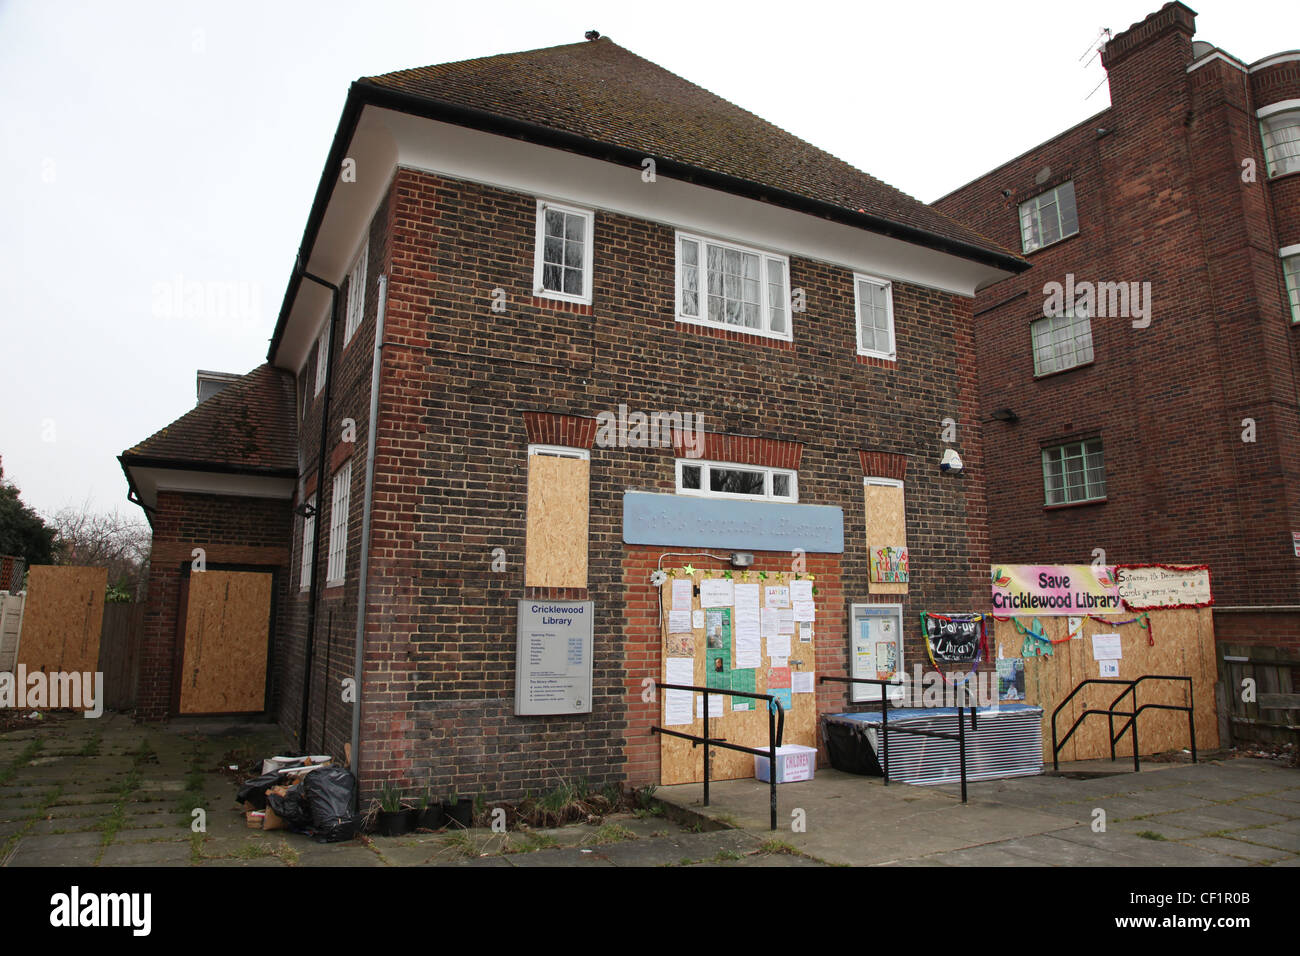 Cricklewood Library, which is closed due to budget cuts. - Stock Image